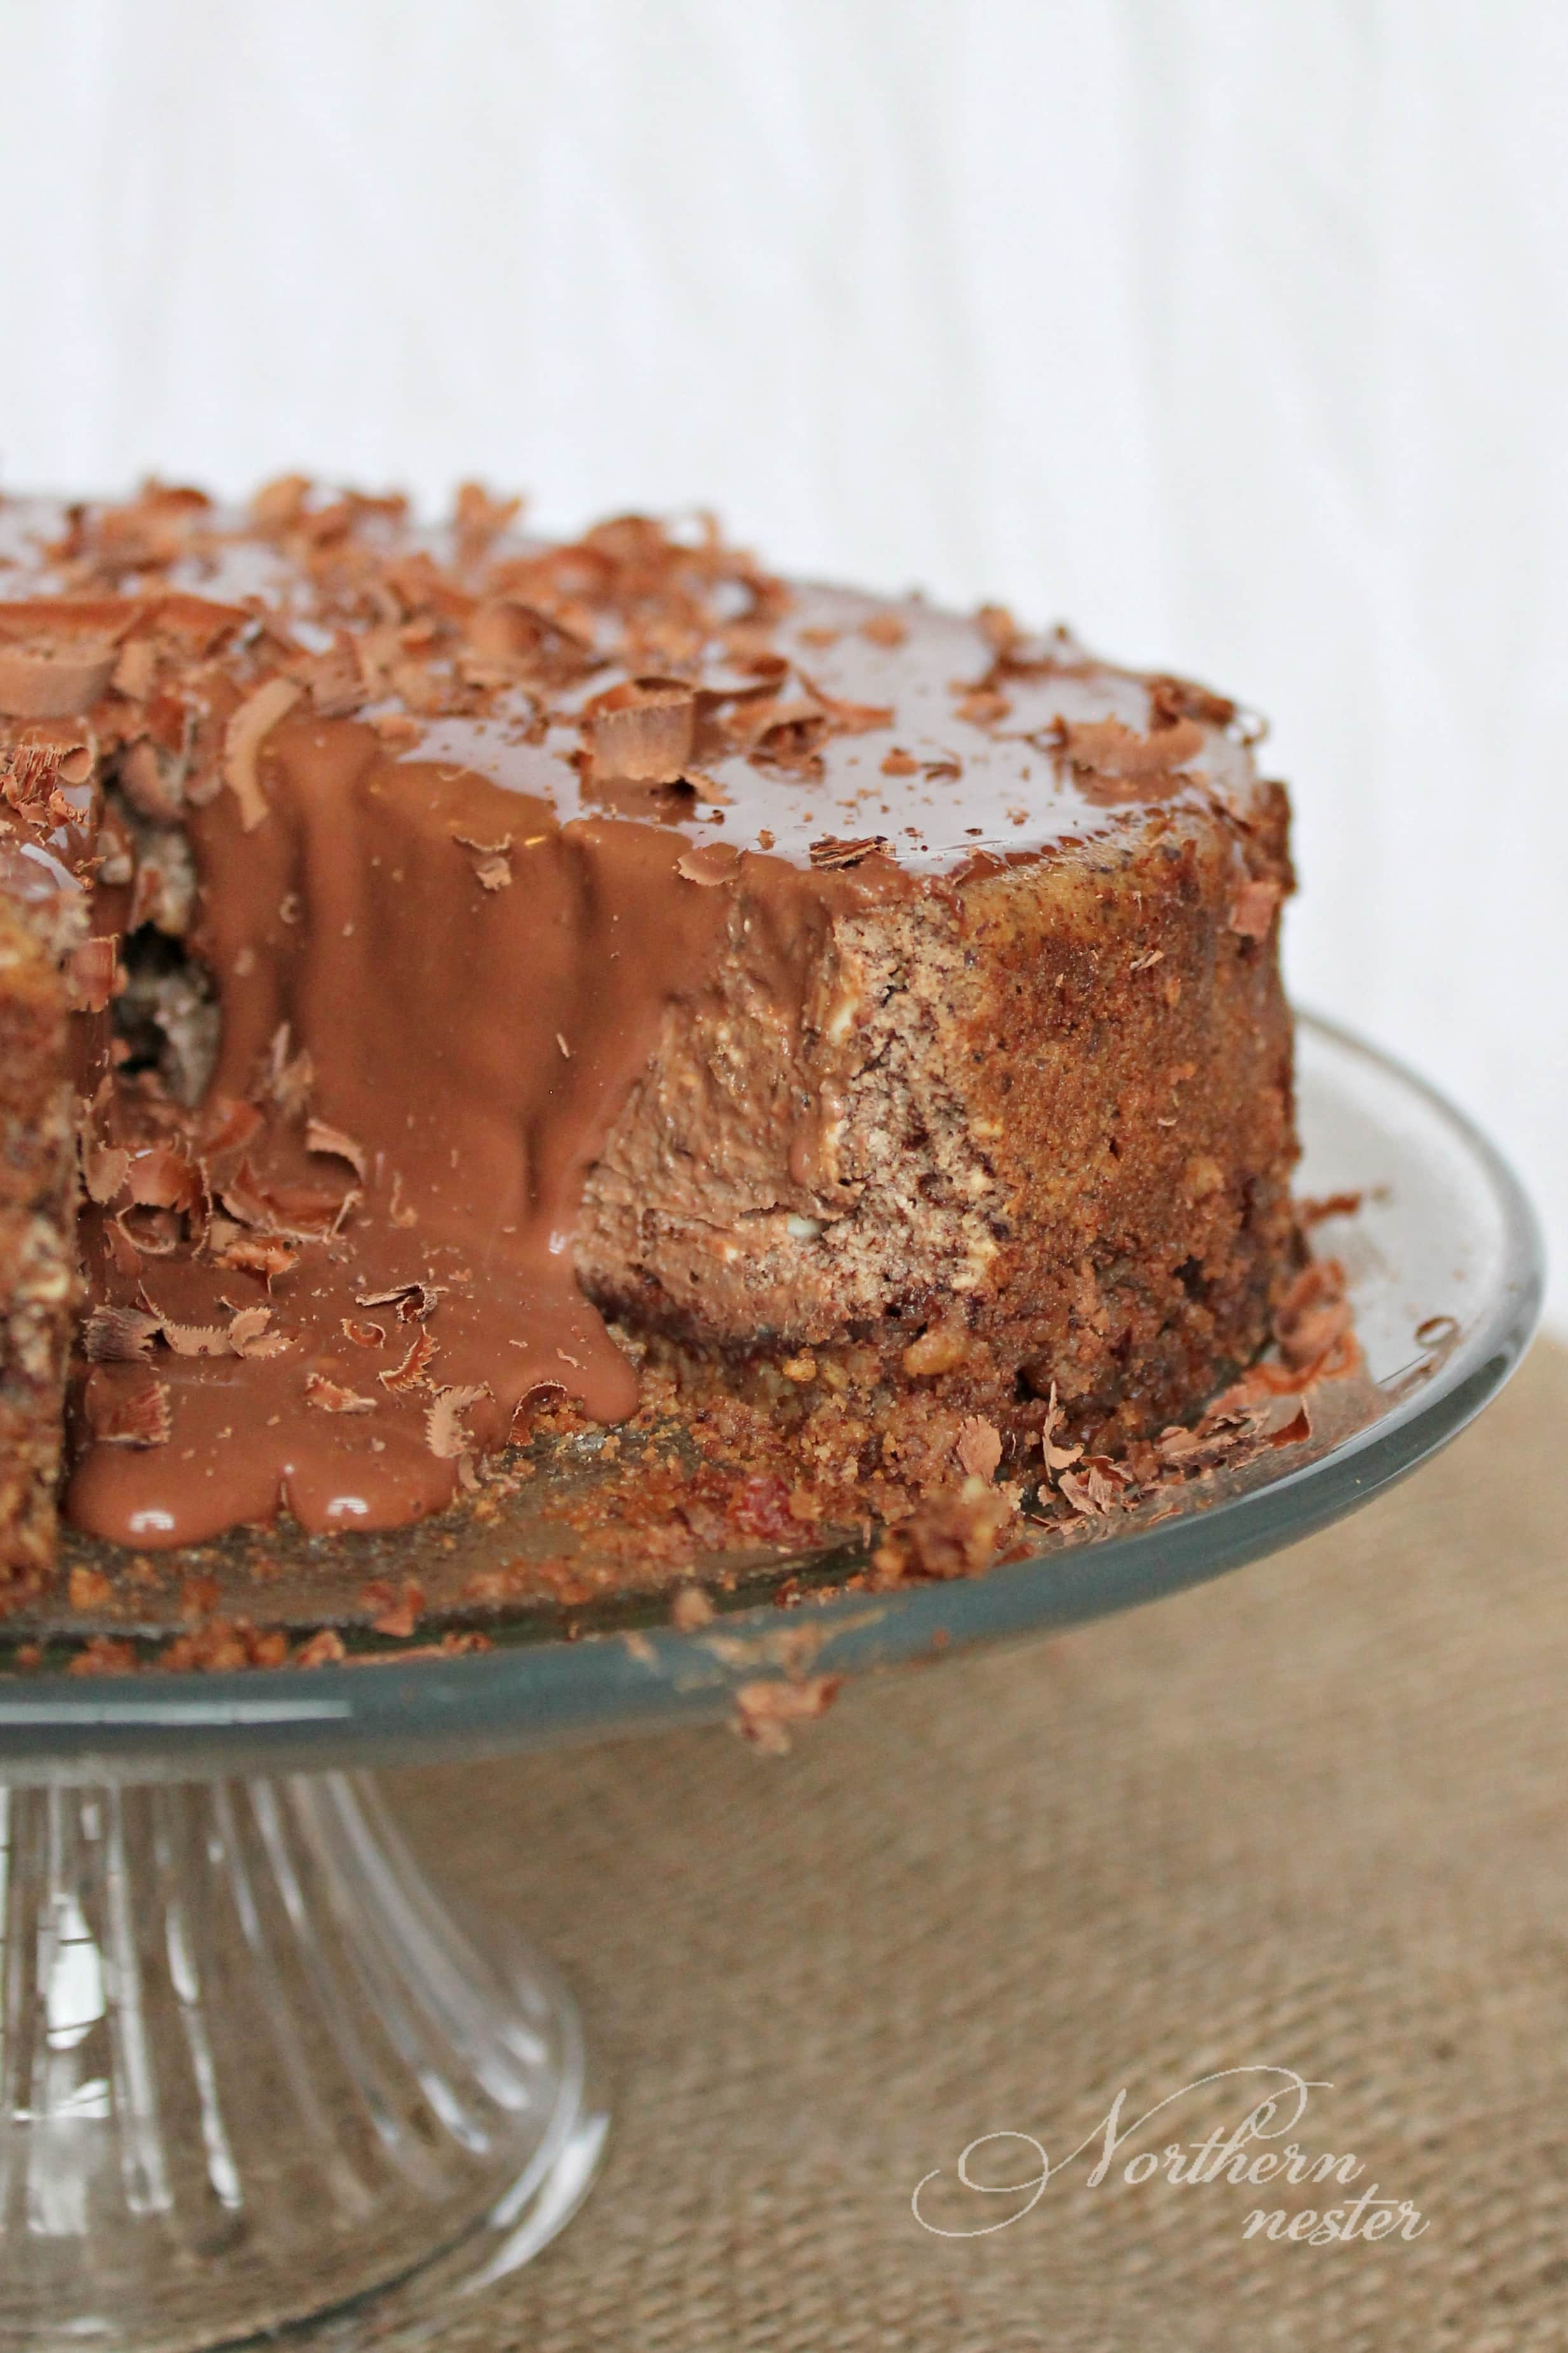 Chocolate cappuccino cheesecake thm s northern nester xylitol is my sweetener of choice because it tastes the most to me like real sugar and i can buy it locally if you have pets or cant tolerate xylitol nvjuhfo Images